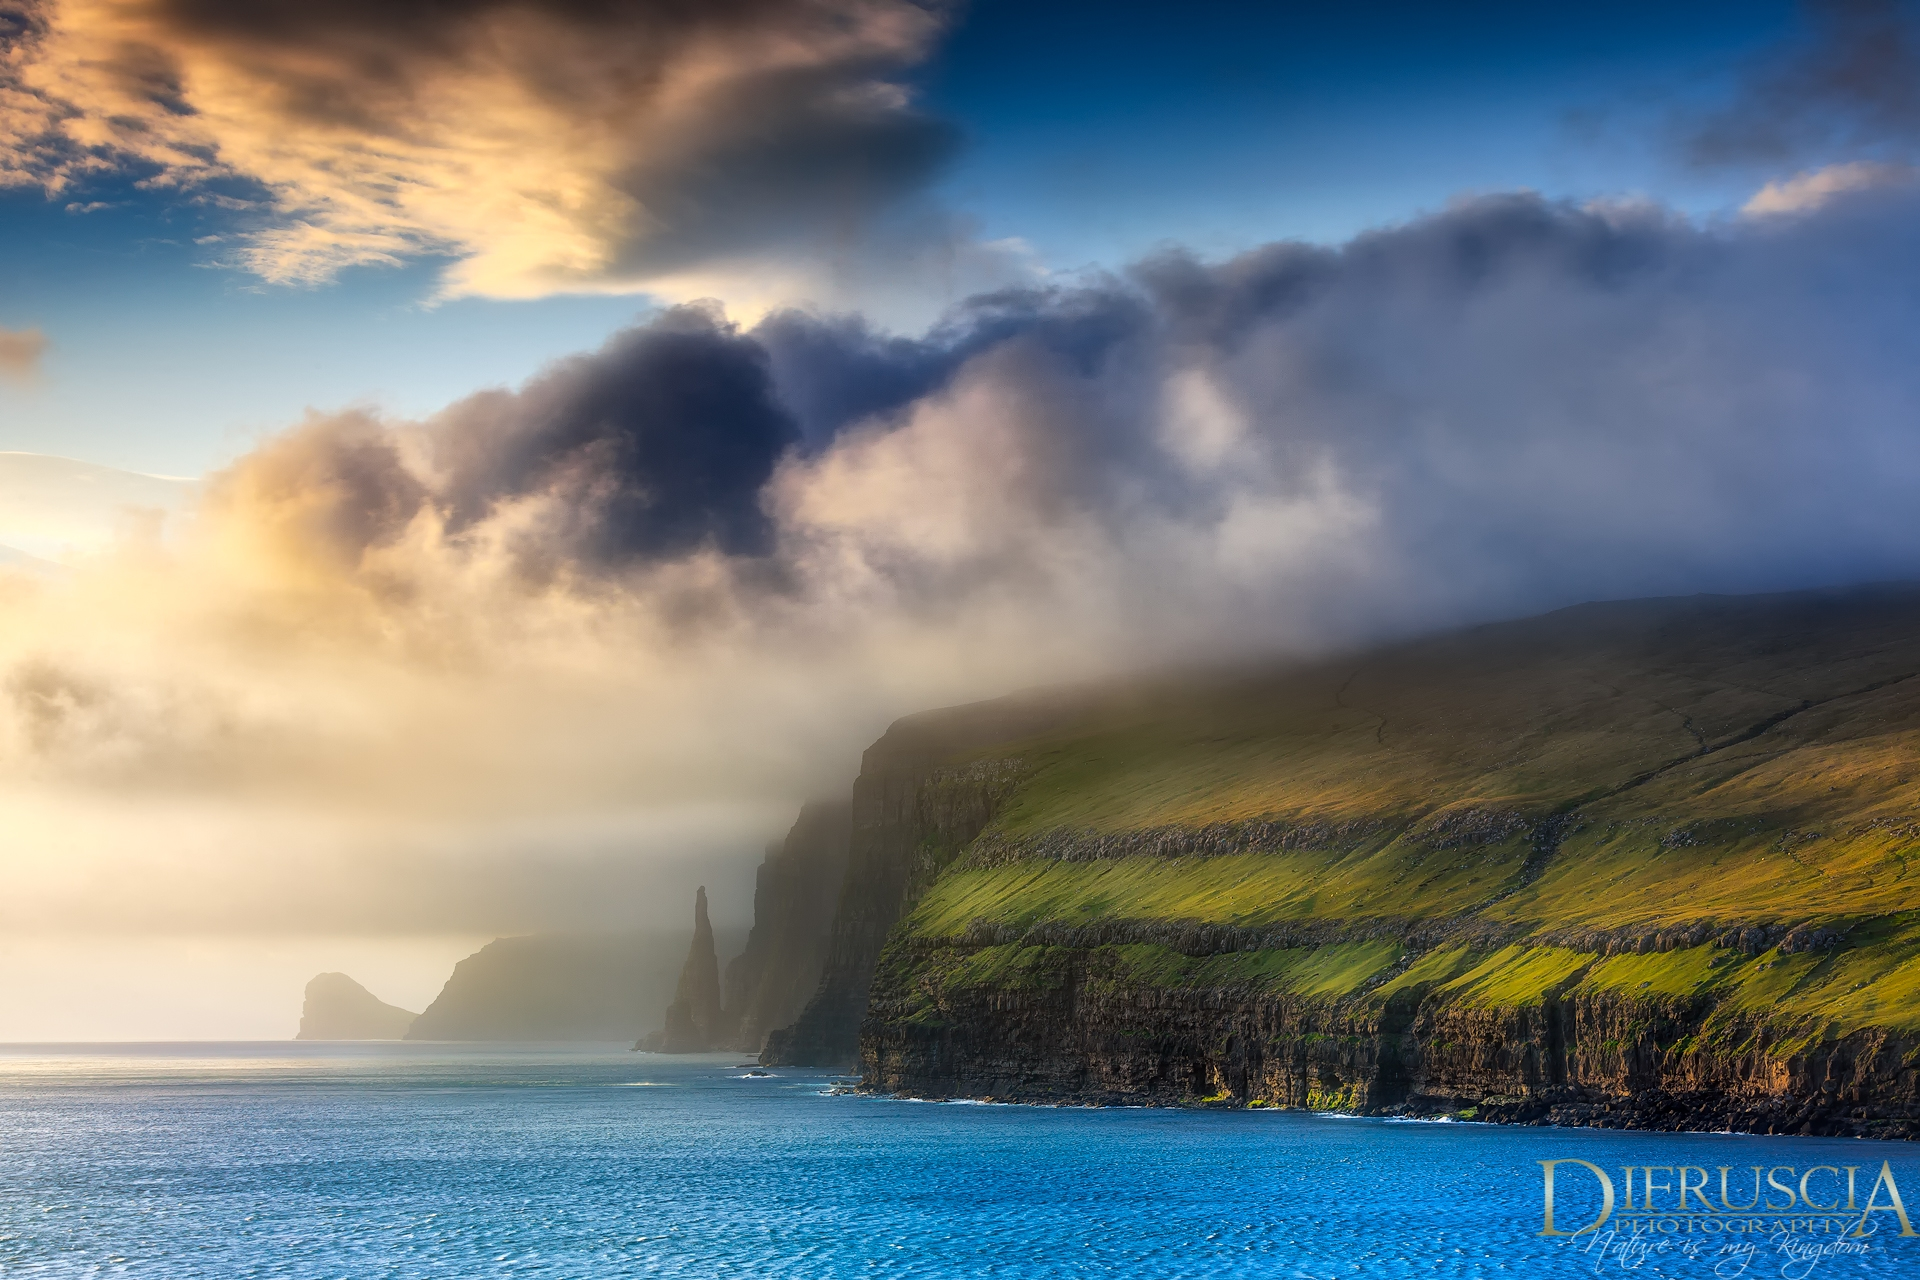 Fine art photography, Nature photography, Limited edition prints, unique edition prints, Photo Tours, Workshop, Di Fruscia, Timecatcher, Master landscapes, landscape photographer, nature photographer, Faroe Islands, Landscape Photography